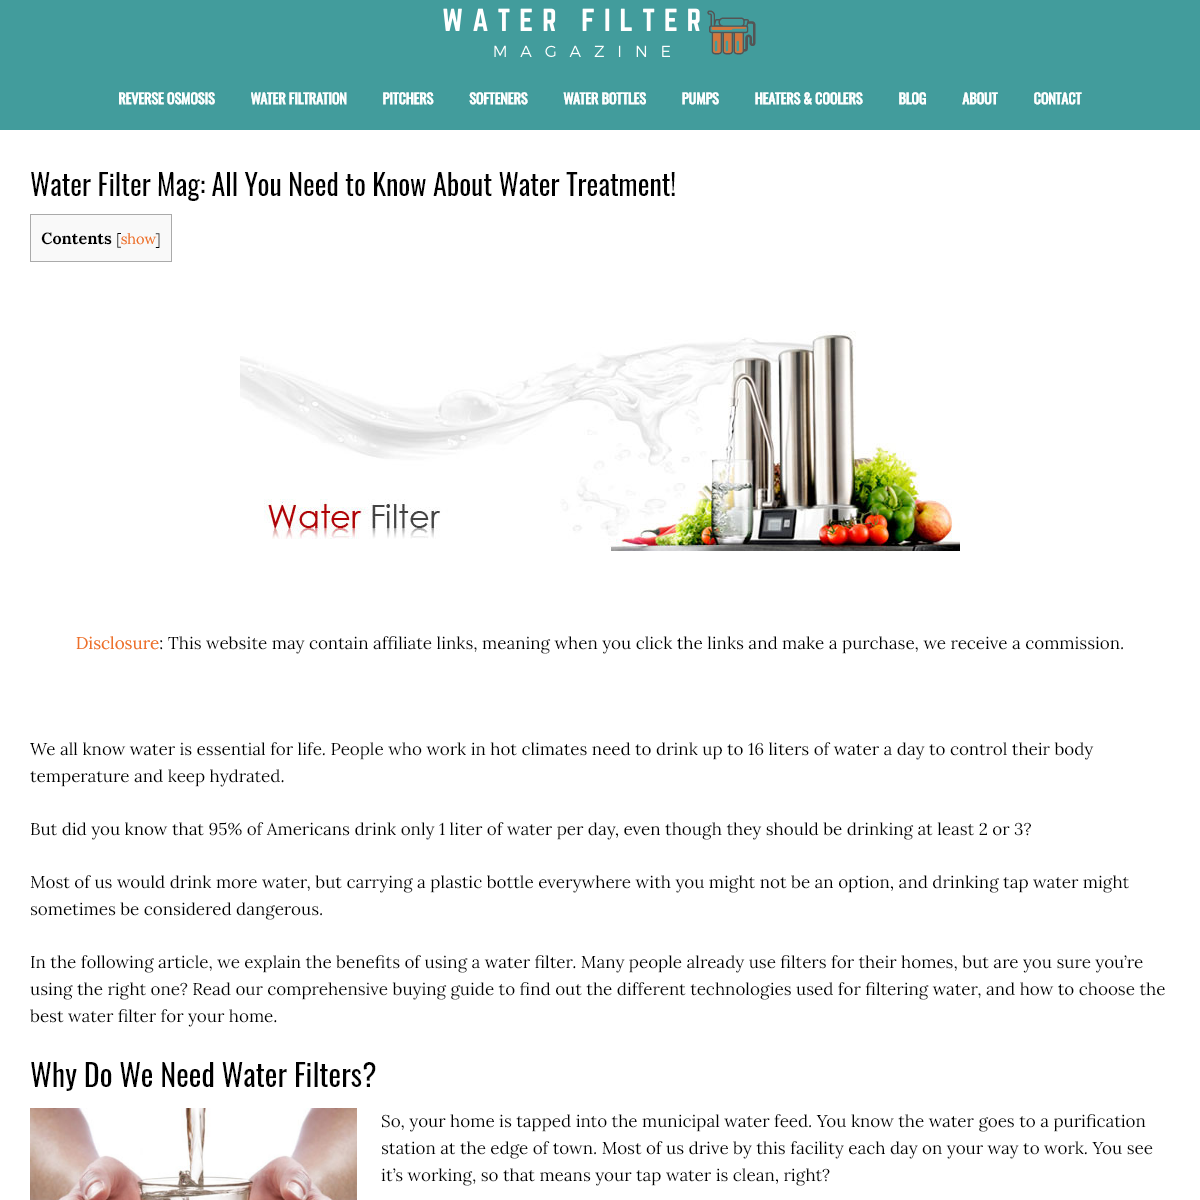 Water Filter Mag- All You Need to Know About Water Treatment!